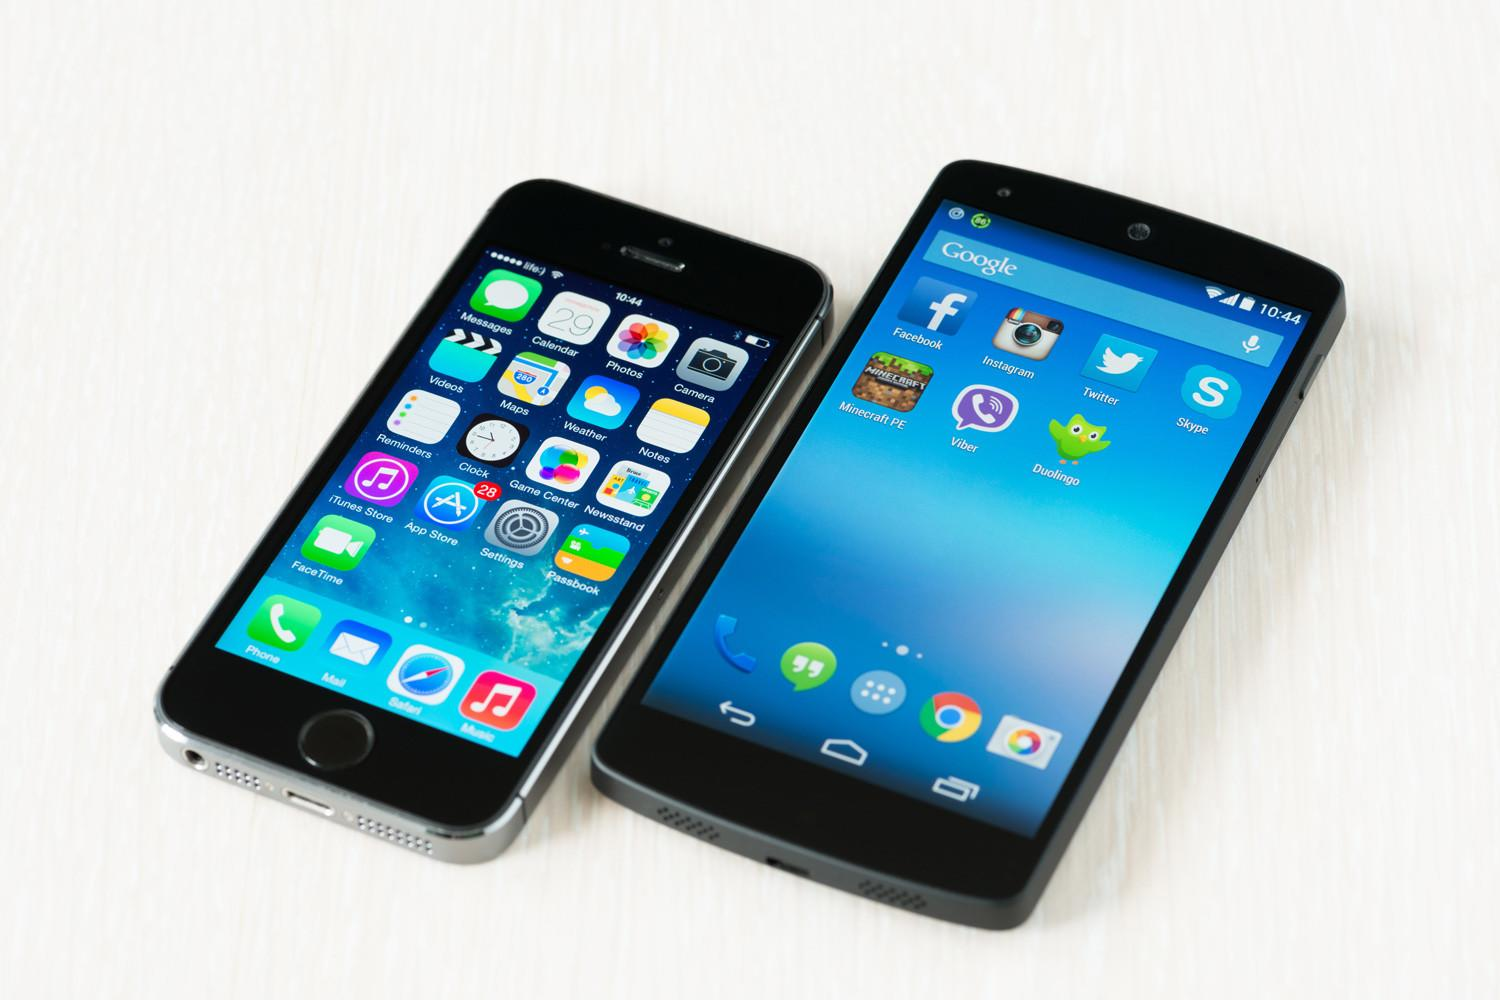 'It Just Works?' Not quite: iPhones crash more than Android phones, study finds